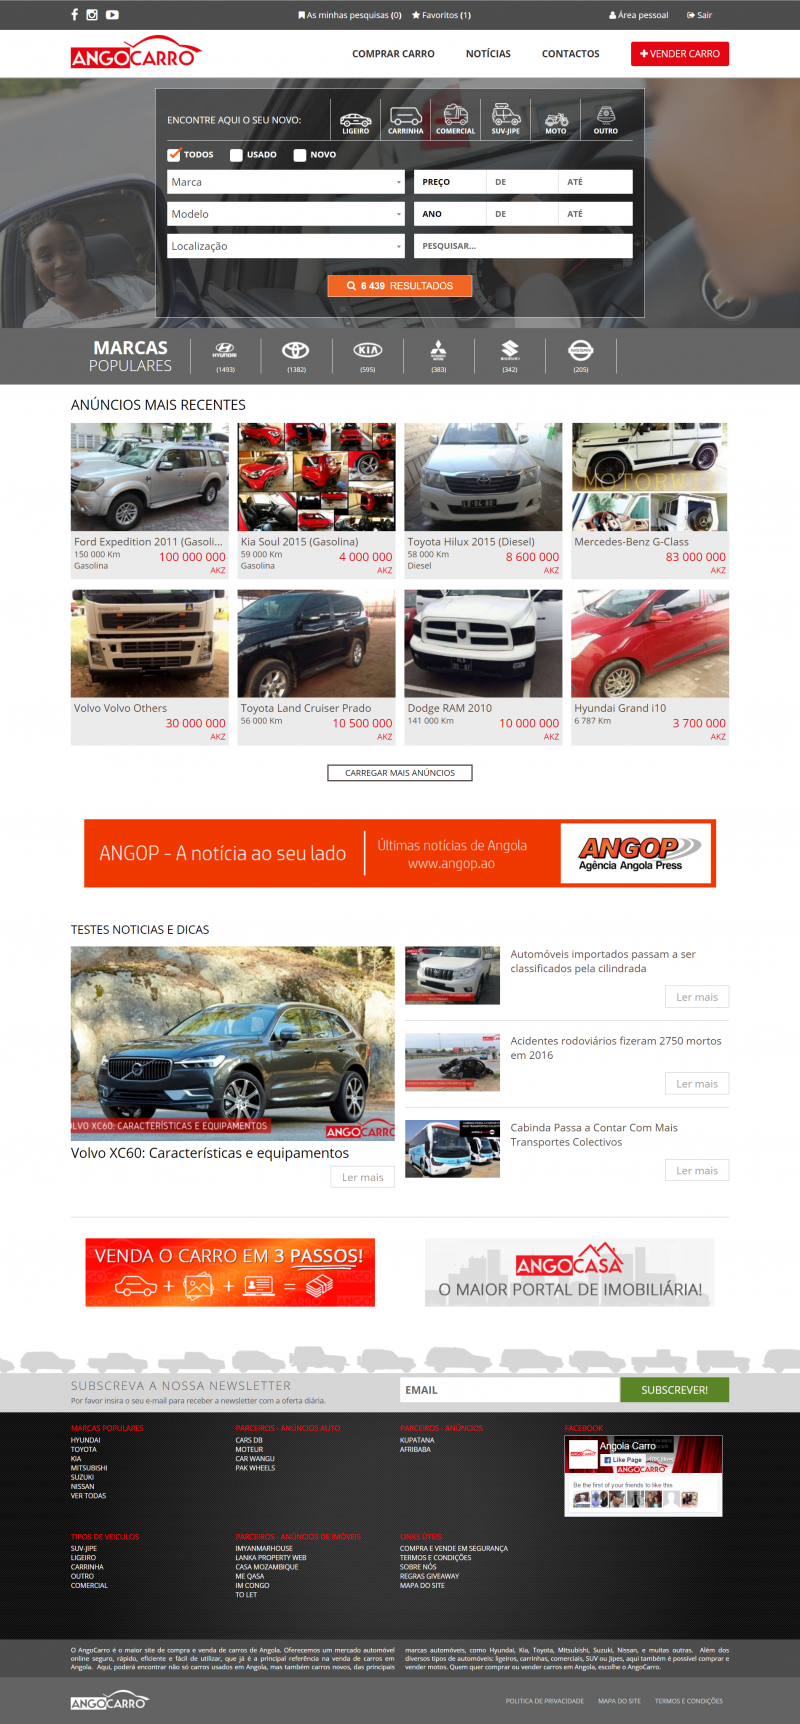 66218-angocarro-voi-site2.png